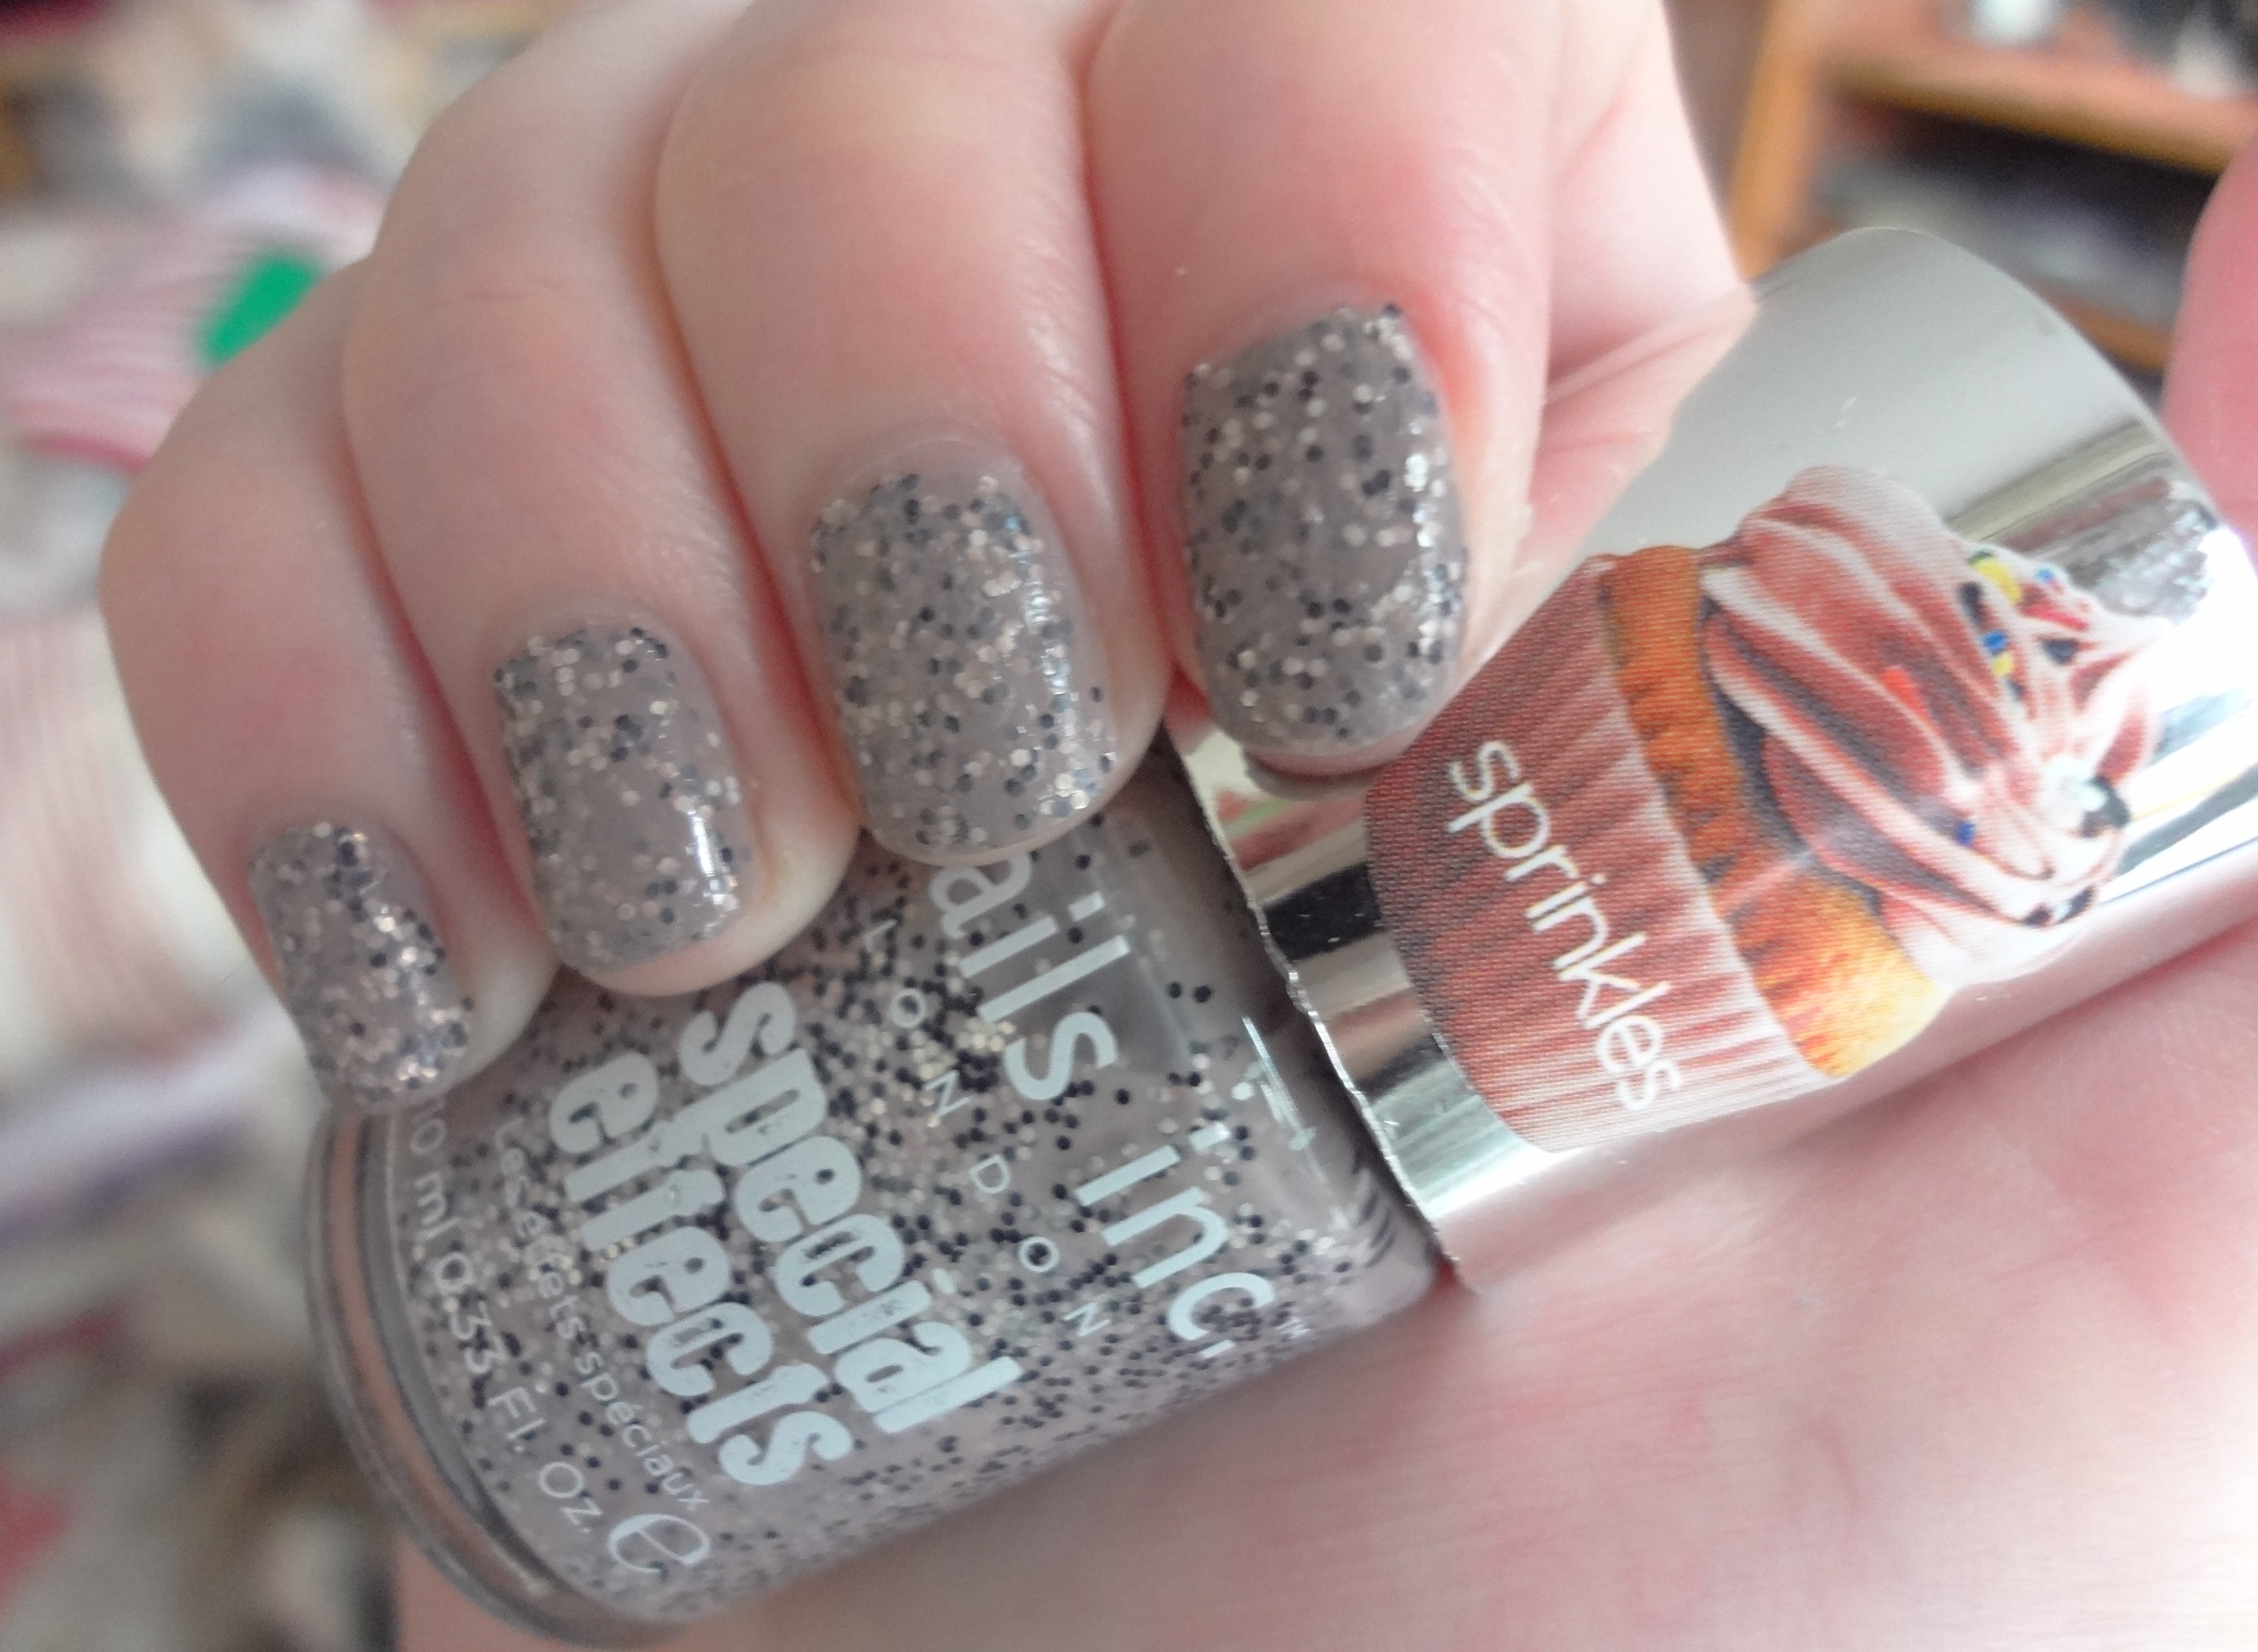 Nails Inc Sugar House Lane Nail Polish Review Through The Looking Glass